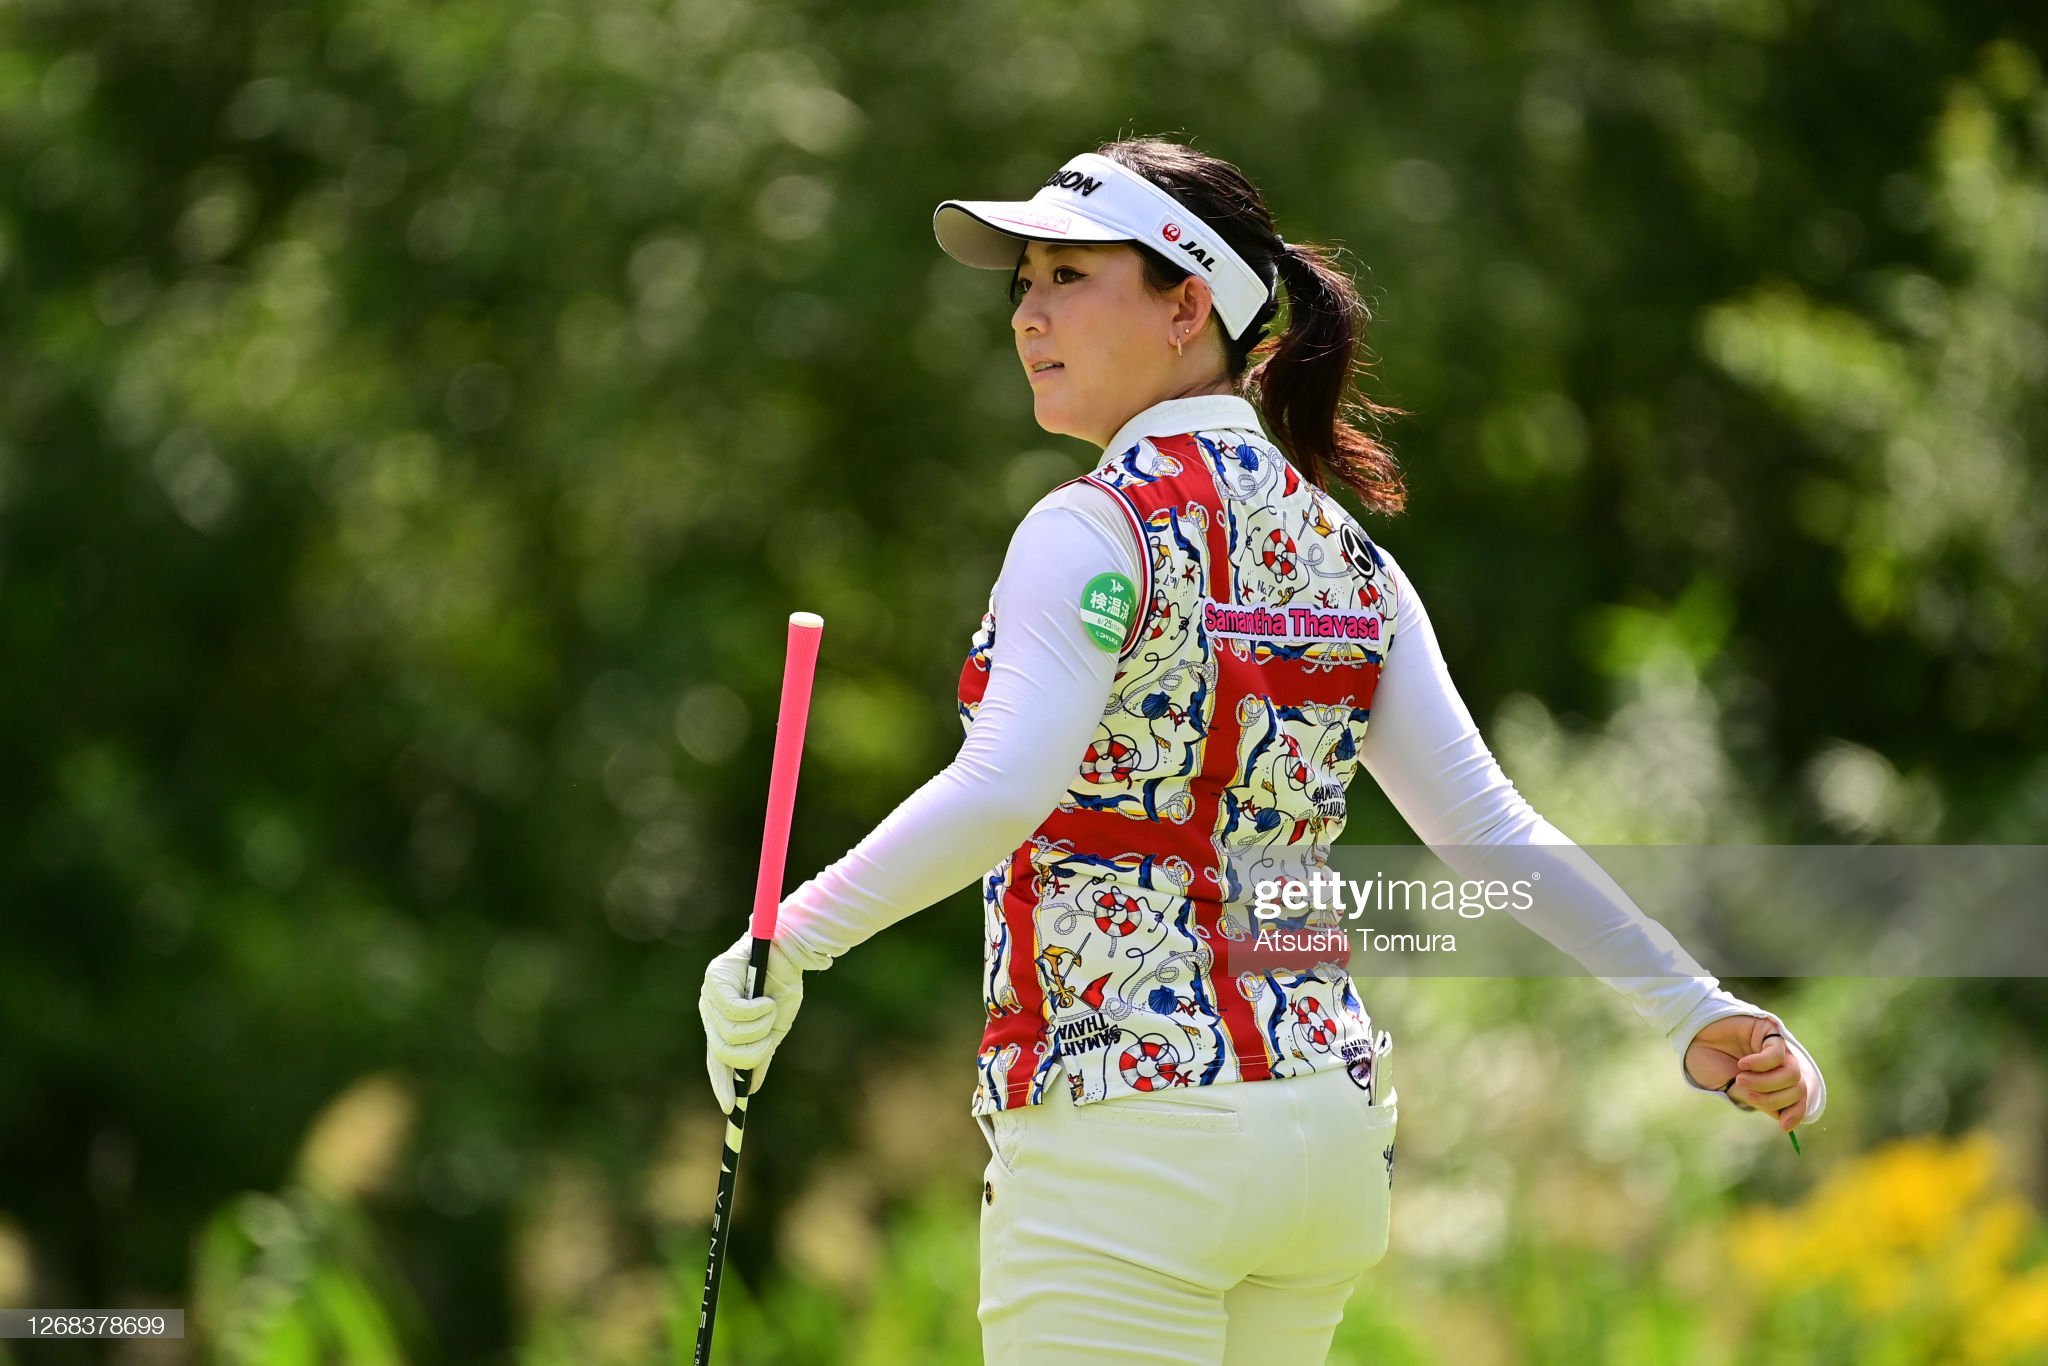 https://media.gettyimages.com/photos/kotono-kozuma-of-japan-is-seen-during-a-practice-round-ahead-of-the-picture-id1268378699?s=2048x2048